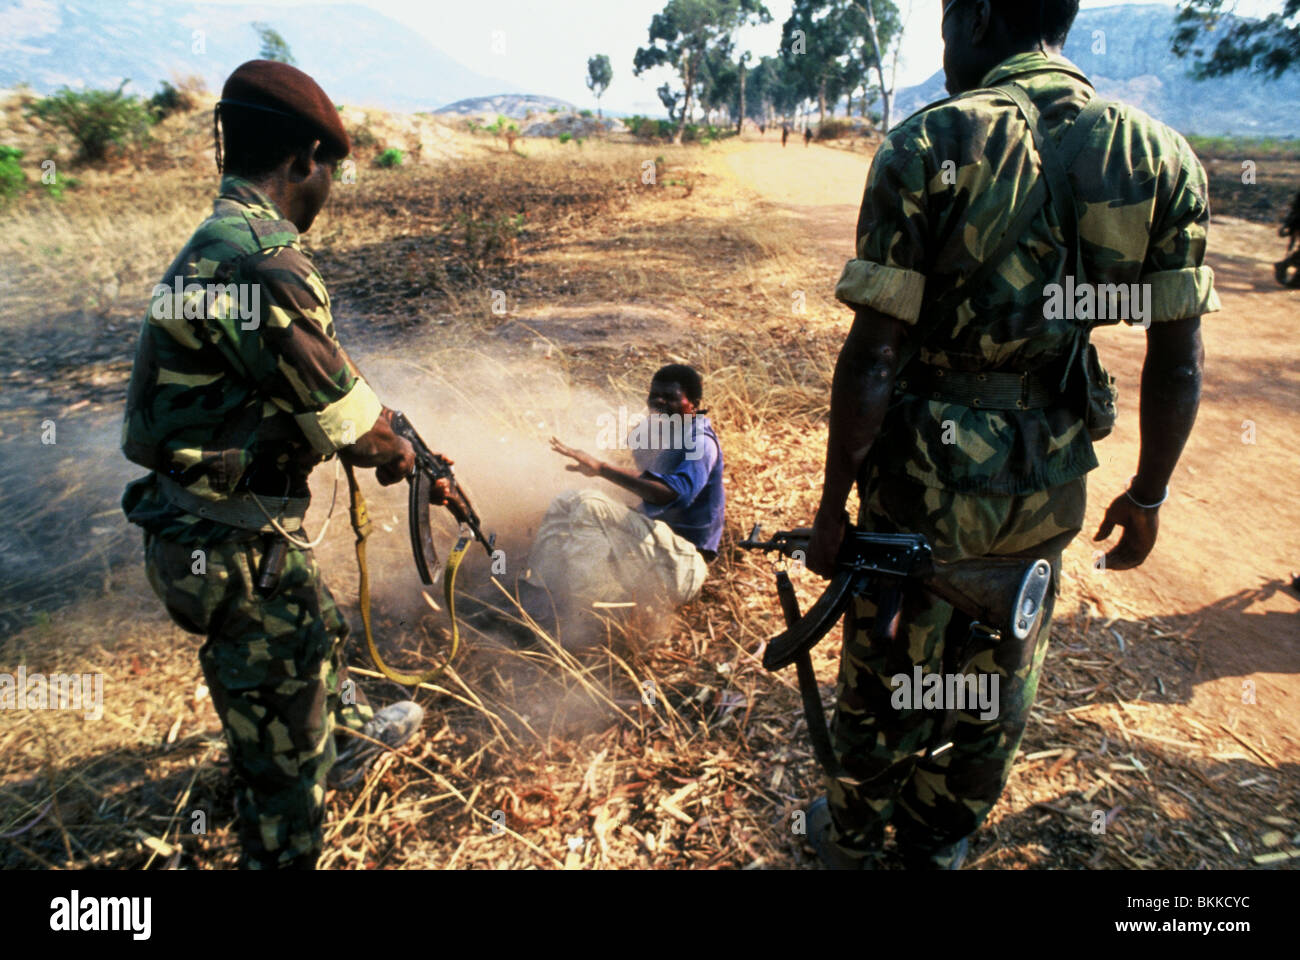 A young man is beaten by MPLA soldiers during Angola's long running civil war. - Stock Image